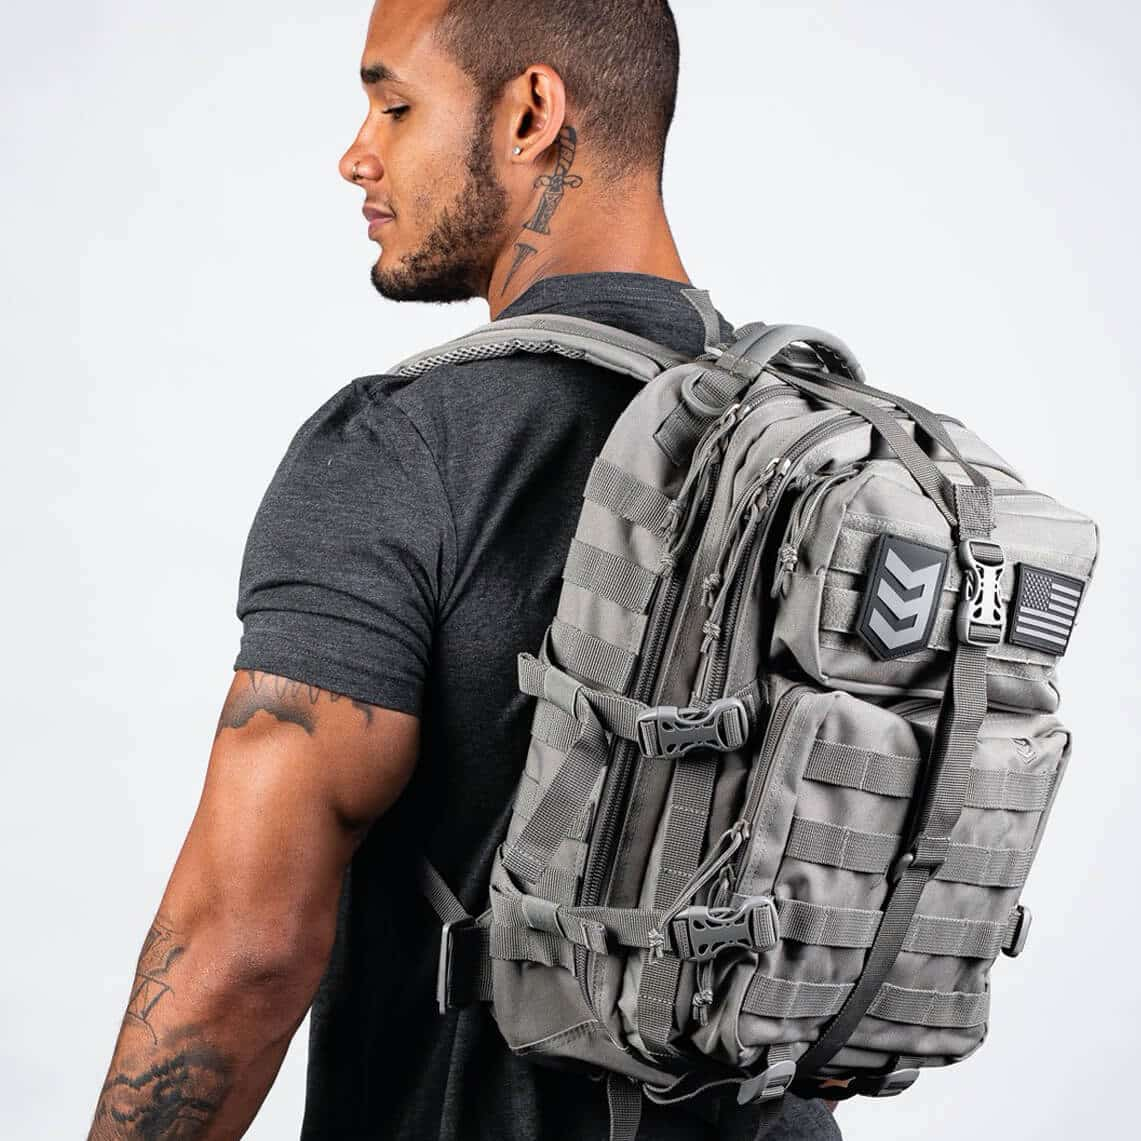 Velox II Quick Action Tactical Backpack